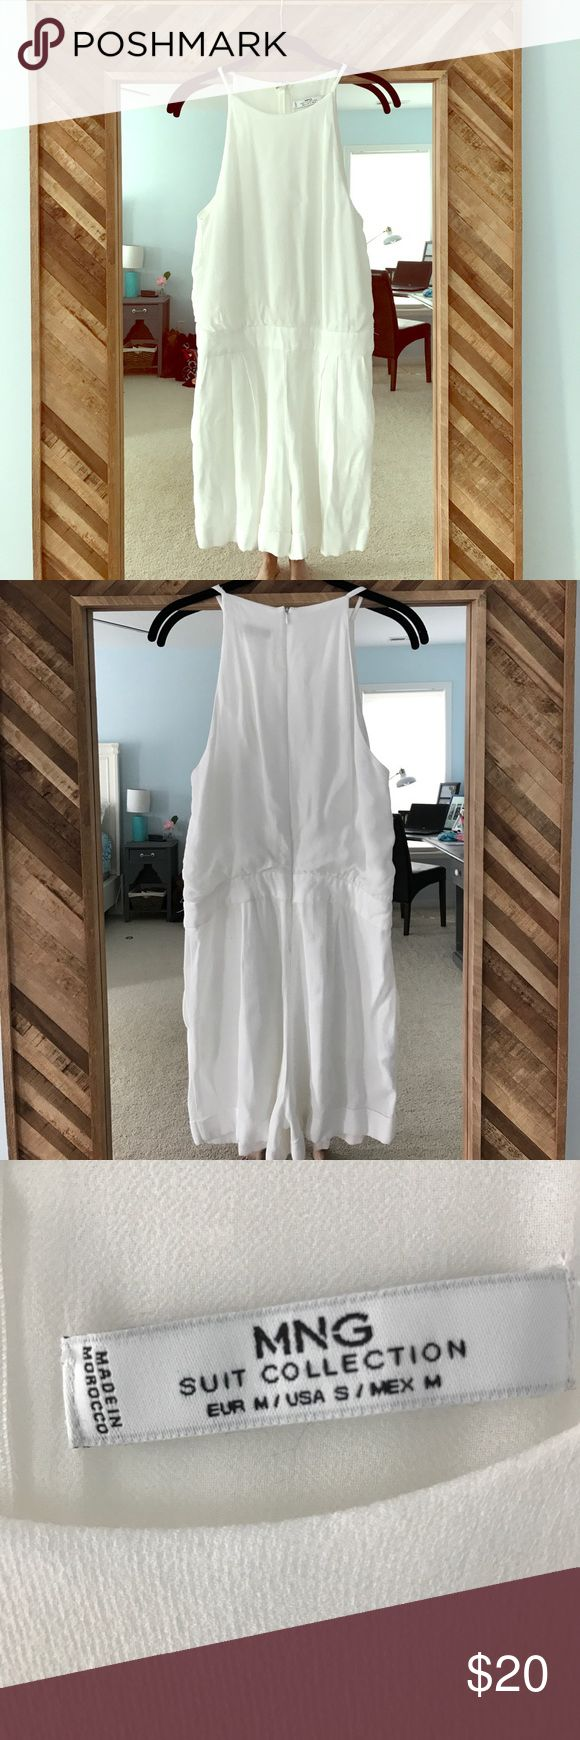 1 DAY SALE Mango Suit Collection Romper size S MNG Suit Collection white romper in size small. This romper is so cute on! On the hanger it doesn't look like much but when actually on it is so cute!! This romper has pockets and zips up the back. Size small Mango Other